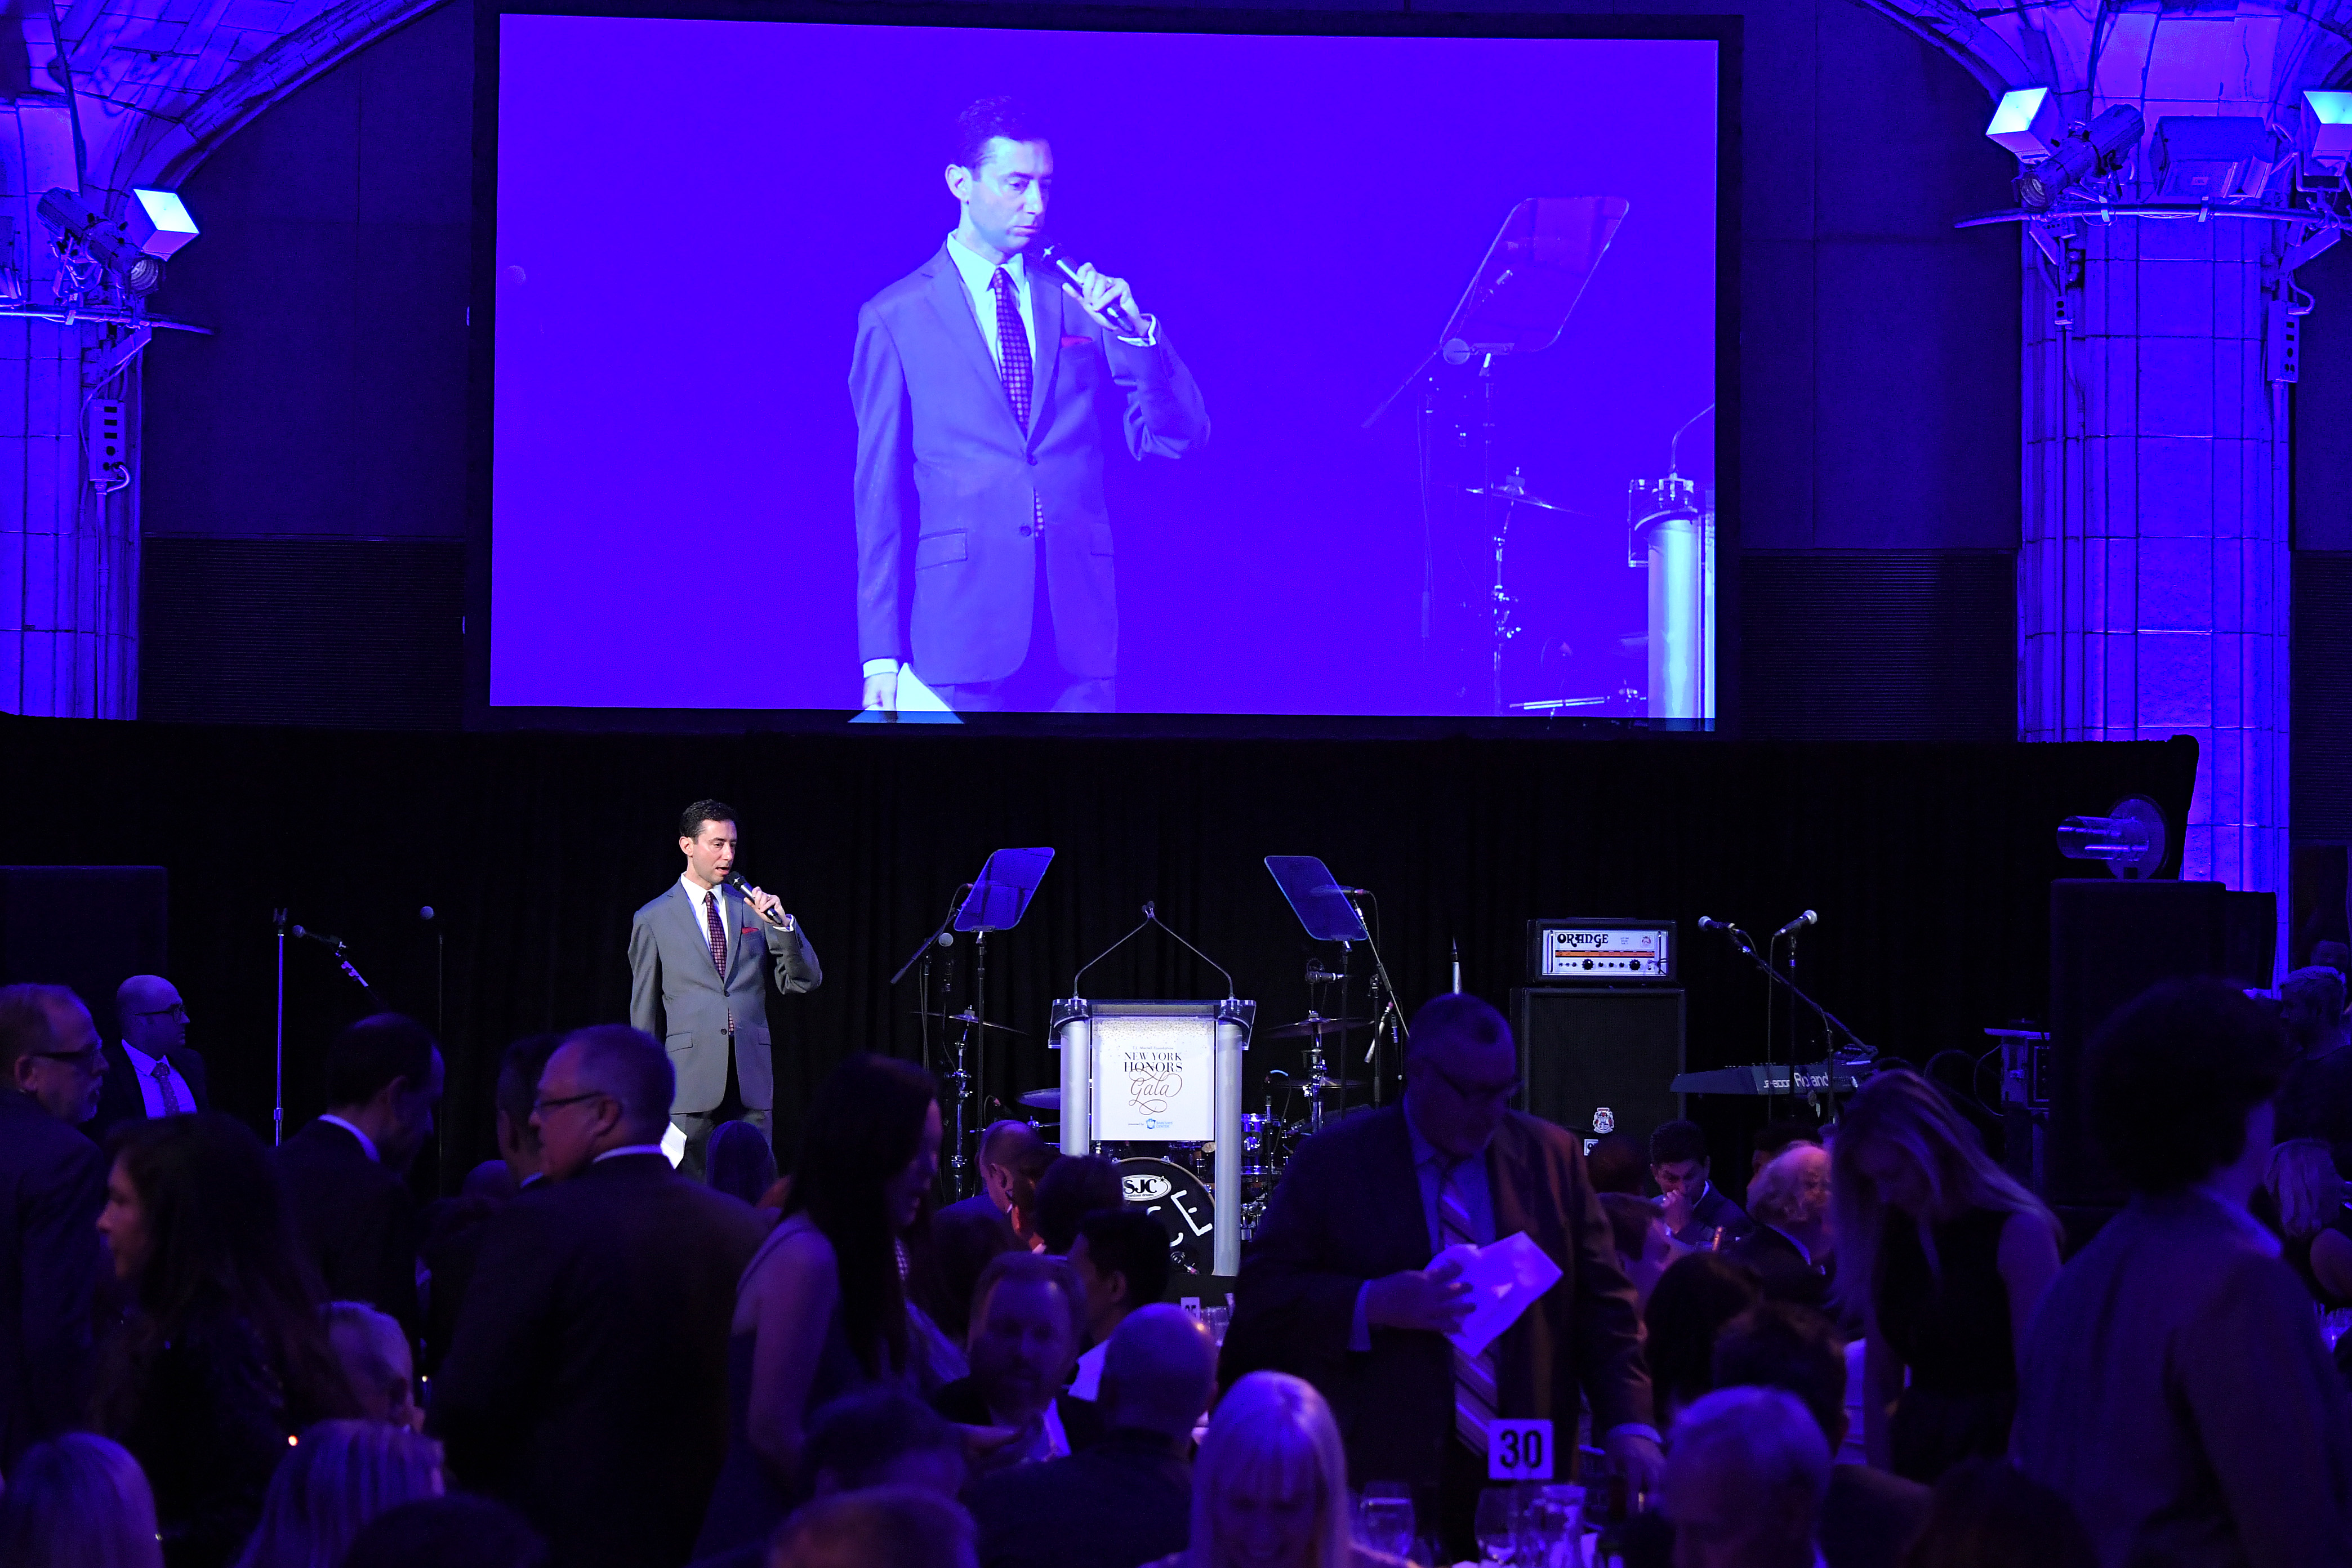 T.J. Martell Foundation's 41st Annual NY Honors Gala